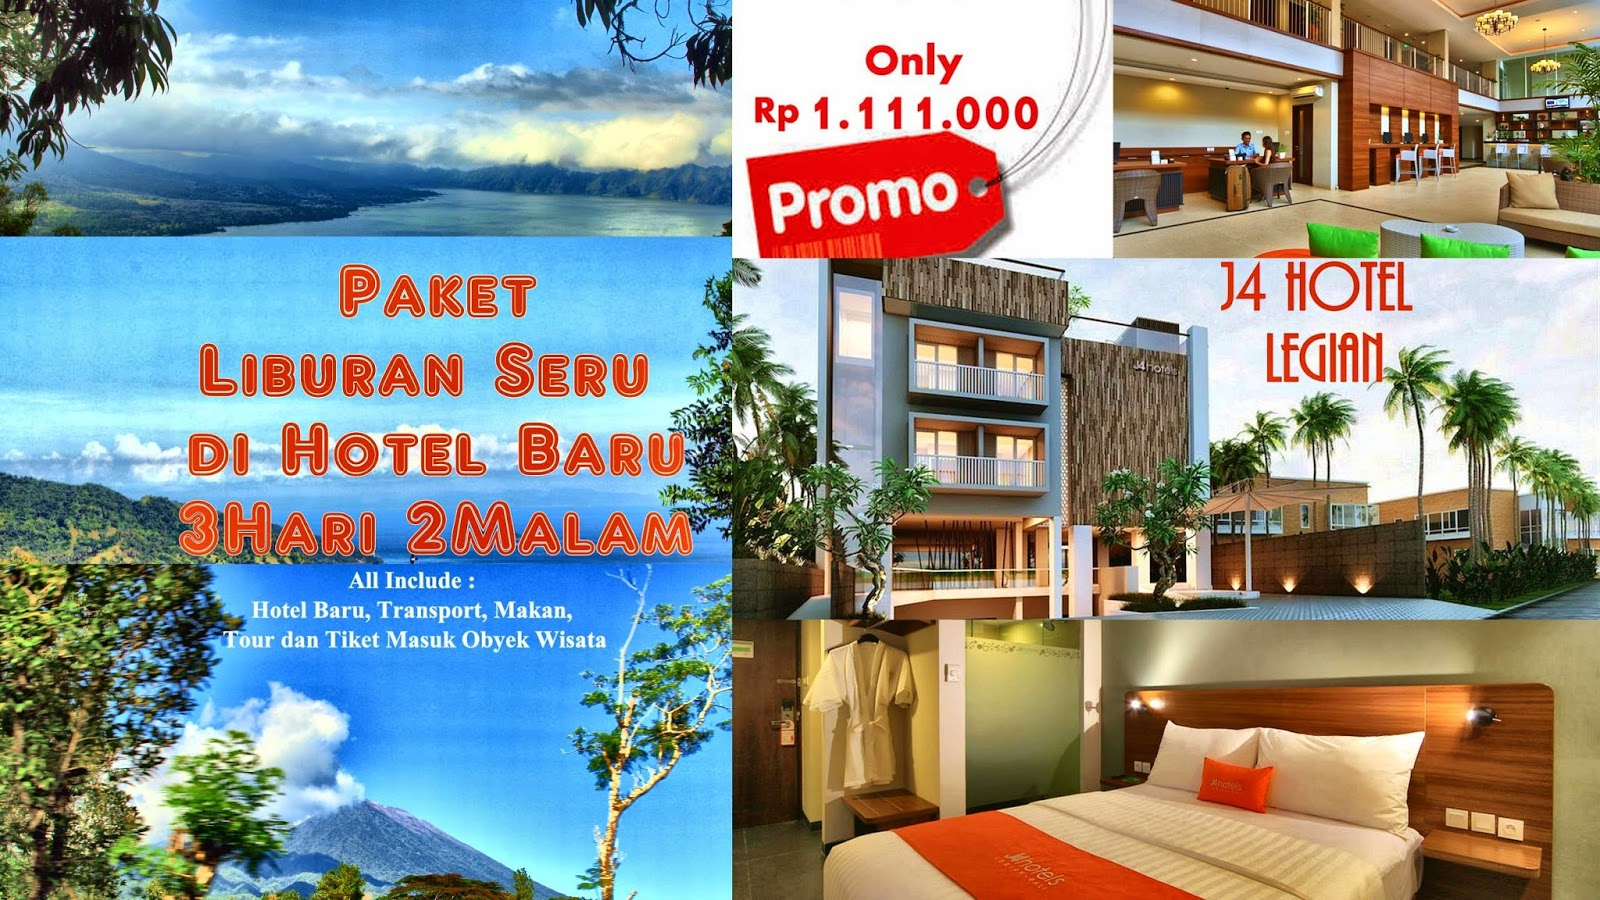 Paket Tour Bali all include 3 hari 2 malam only  Rp 1.111.000